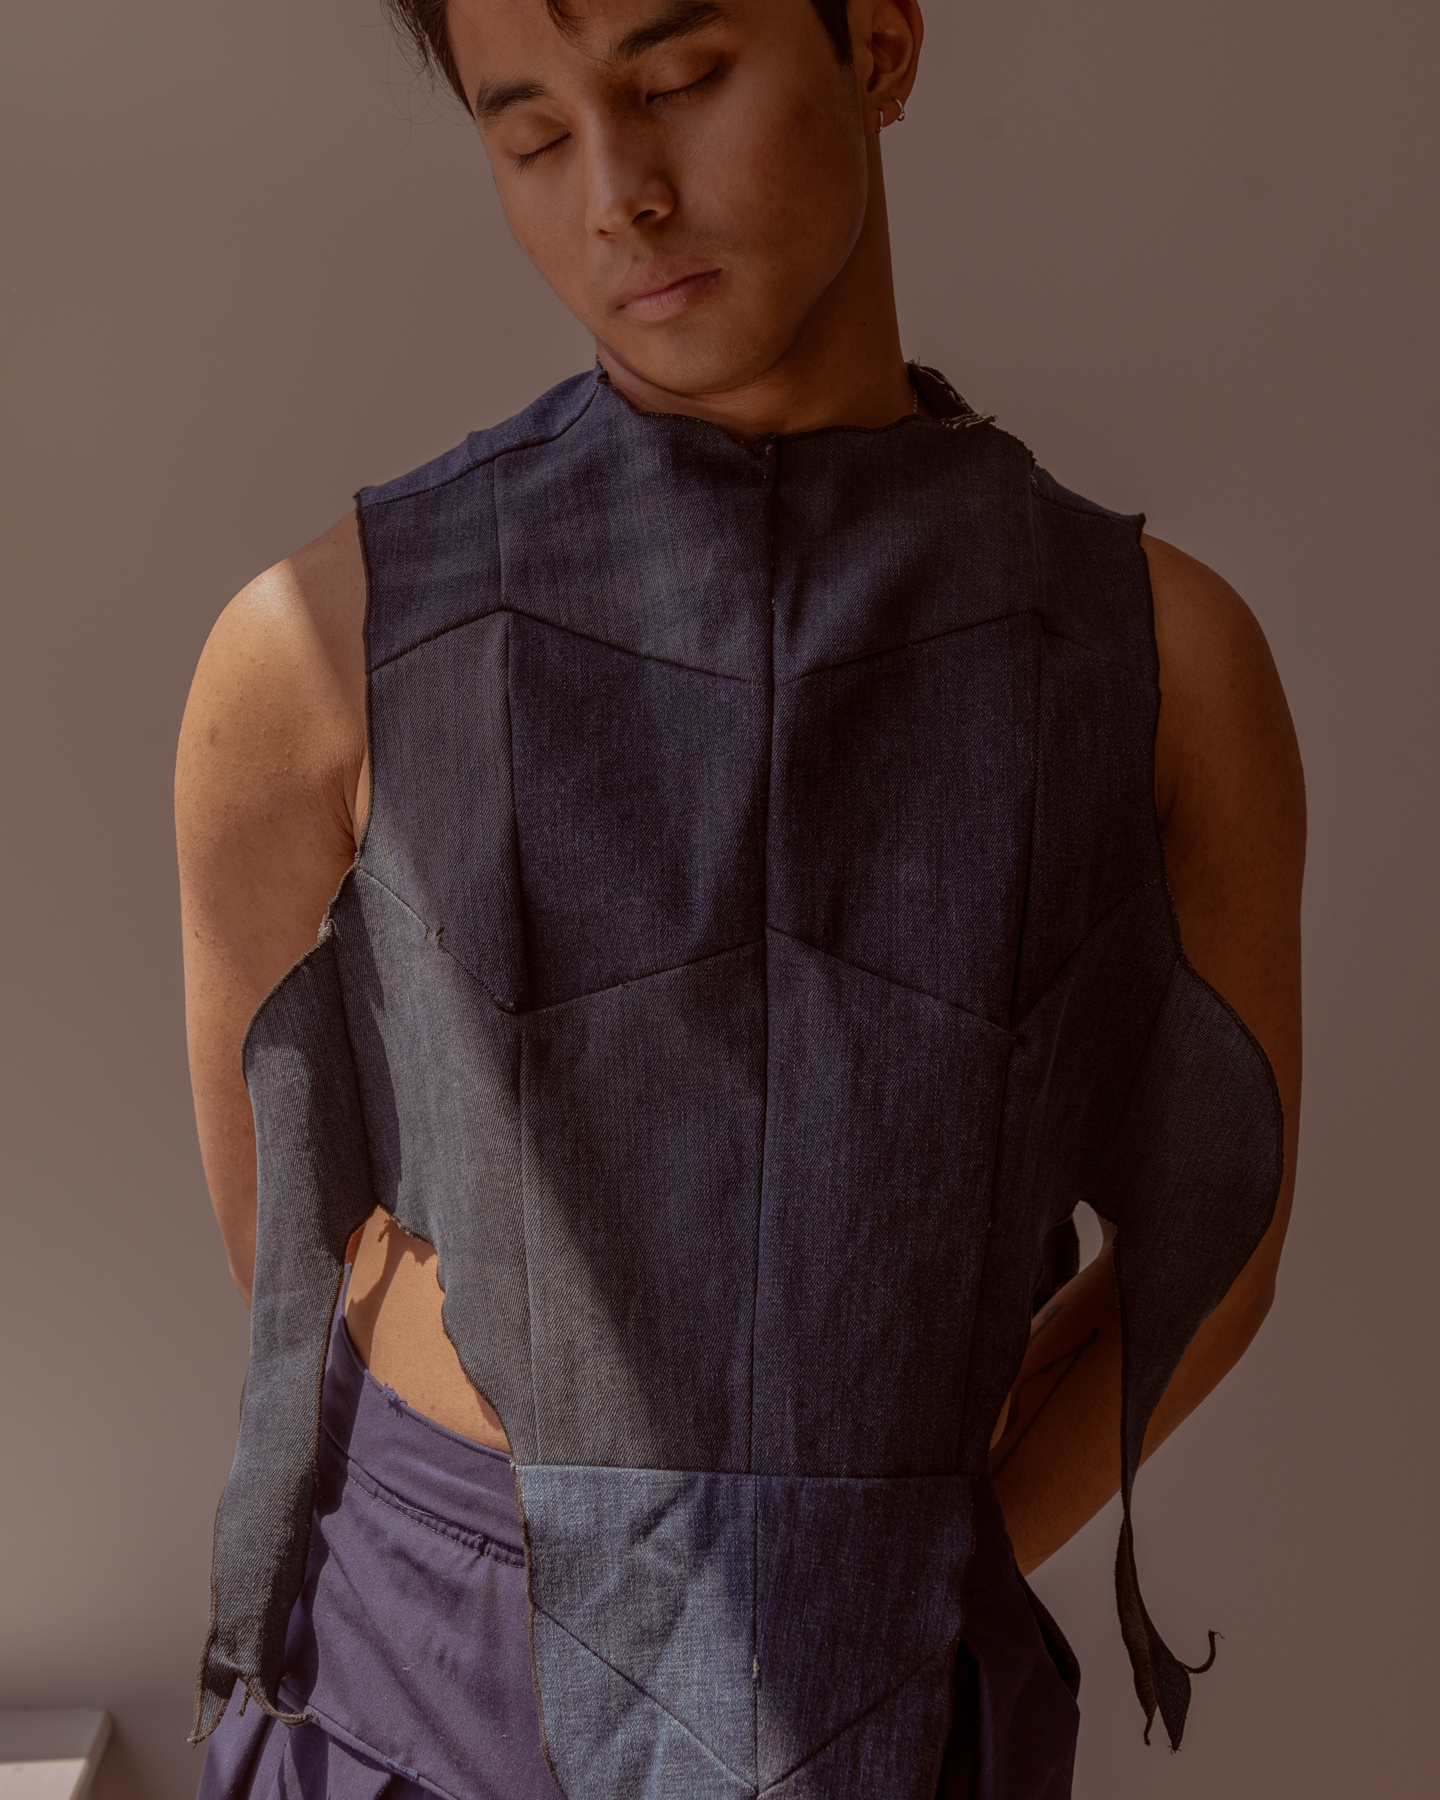 Image: Sam Fissell has one arm behind his back while looking down. He is wearing a dark-colored garment with ripped detailing and a geometric-like pattern. Photo by Ryan Edmund Thiel.